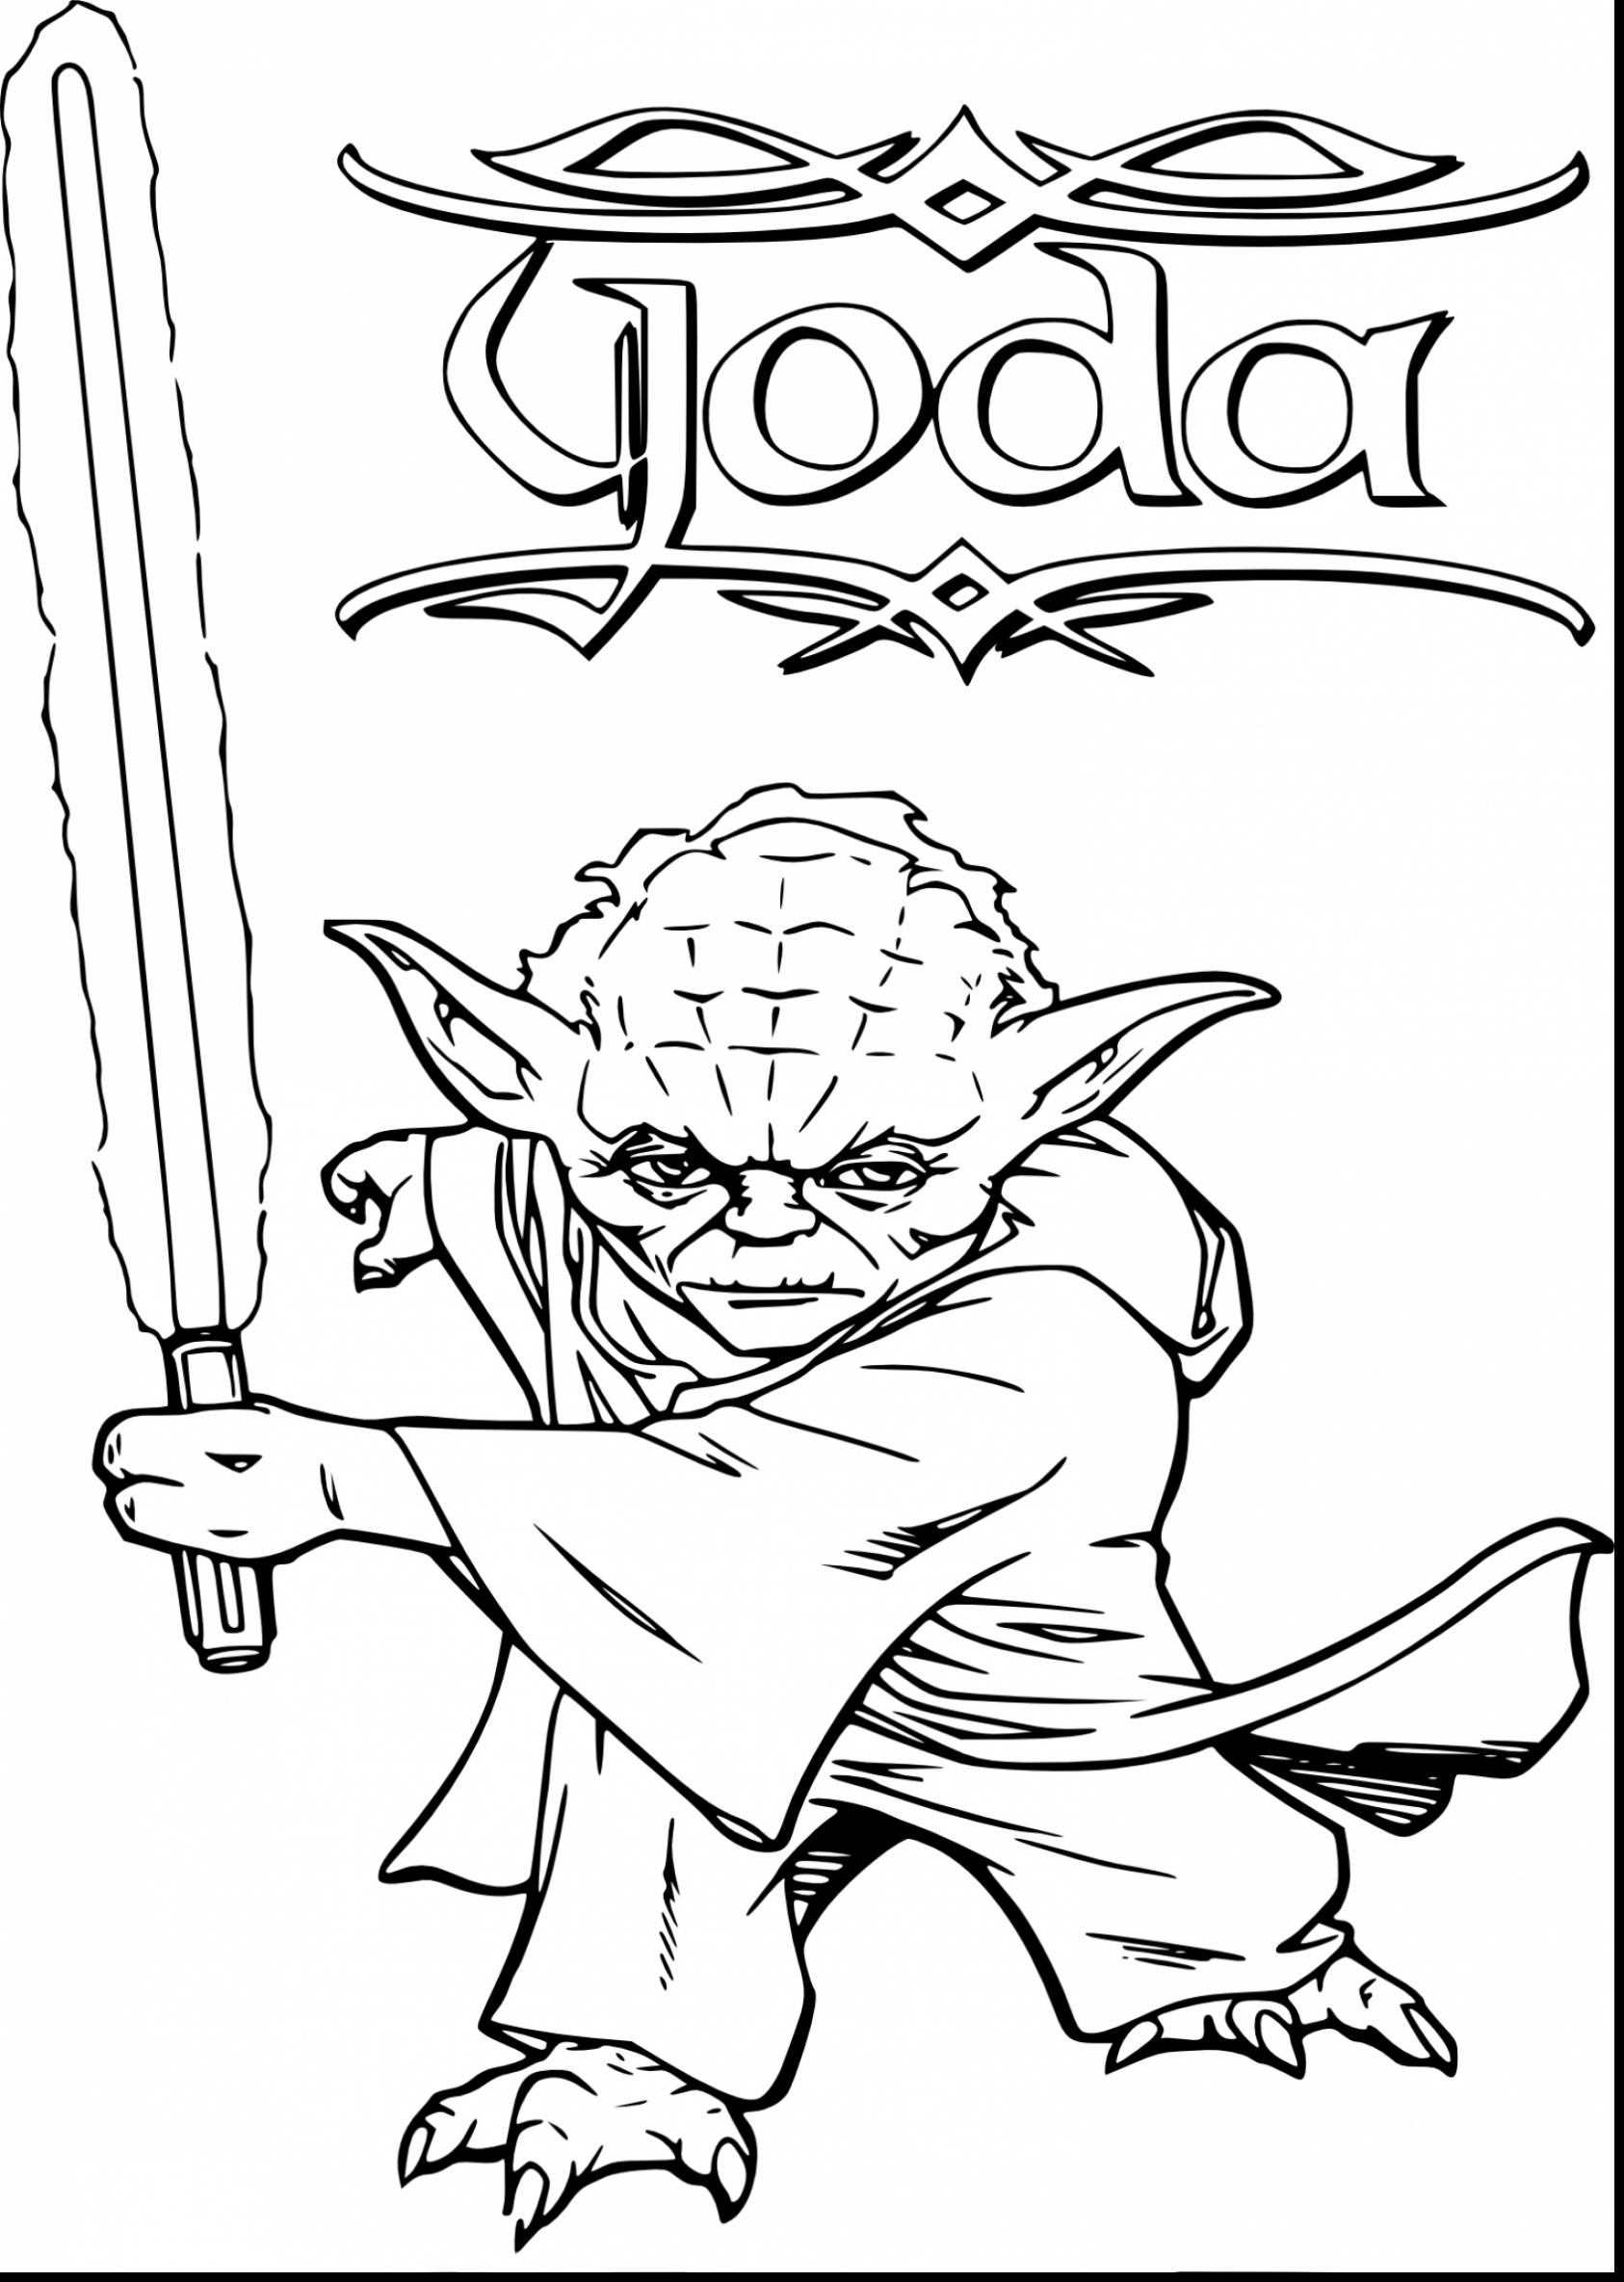 Printable Lego Star Wars Yoda Coloring Pages Printable to Pretty Printable Of Coloring Pages Of Star Wars Free Coloring Pages Star Wars Printable